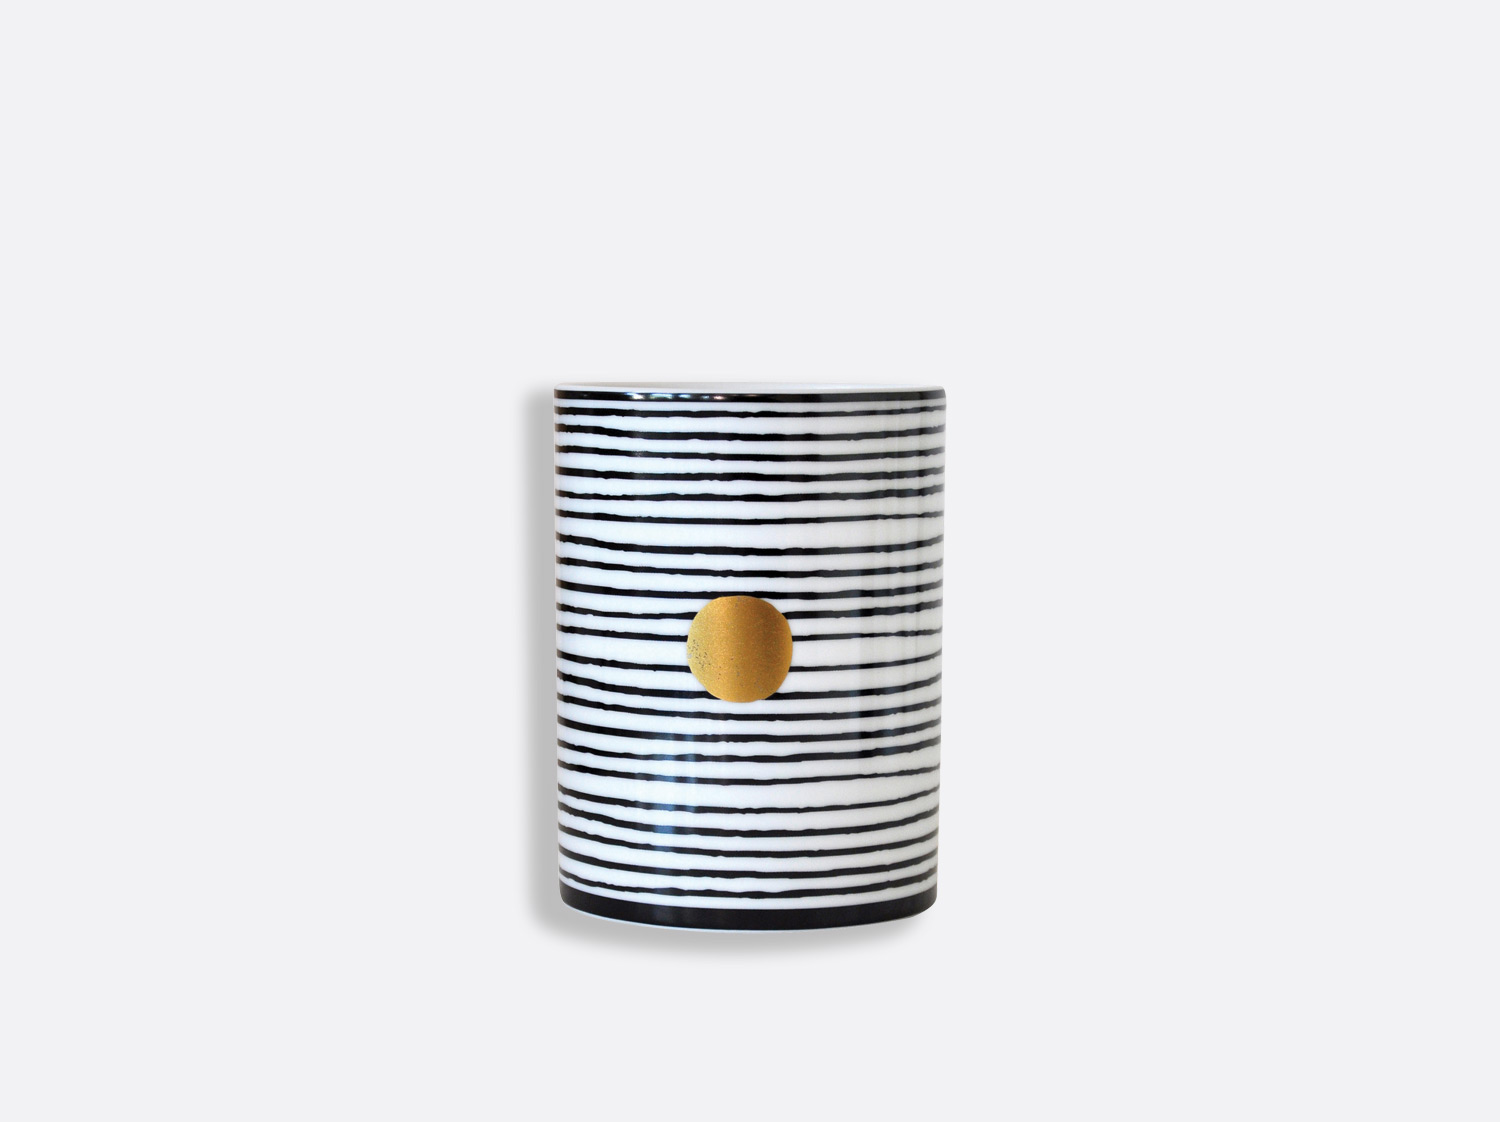 China Vase 16 cm of the collection Aboro | Bernardaud